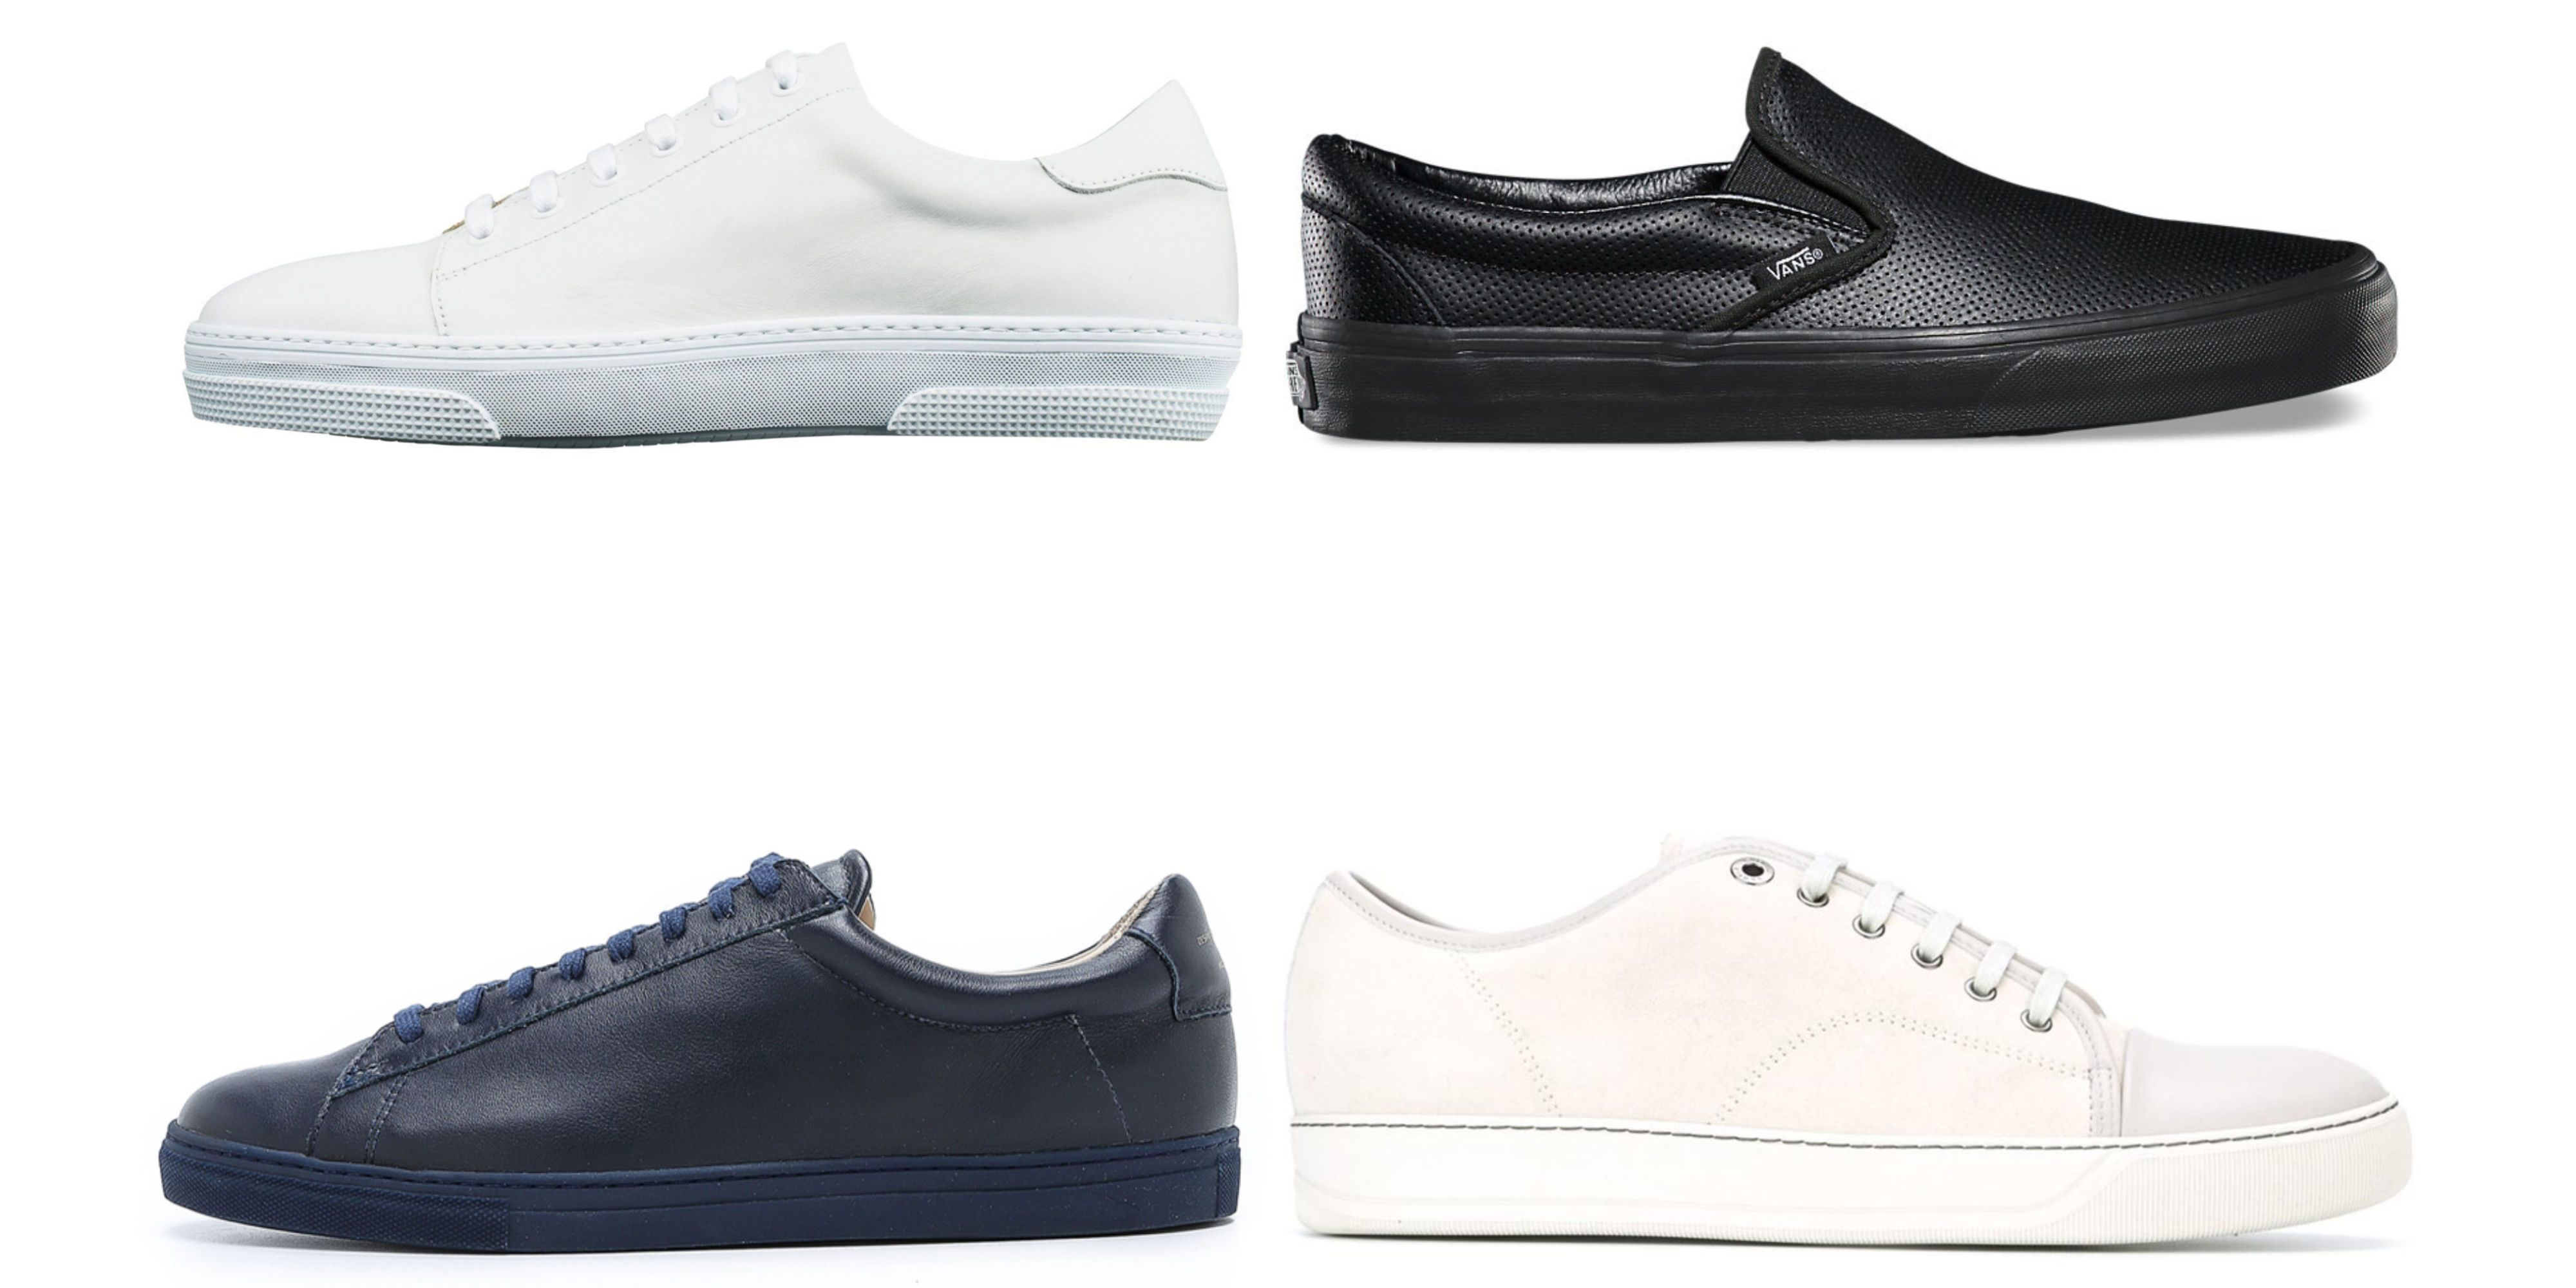 How to Wear Sneakers to Work - Best